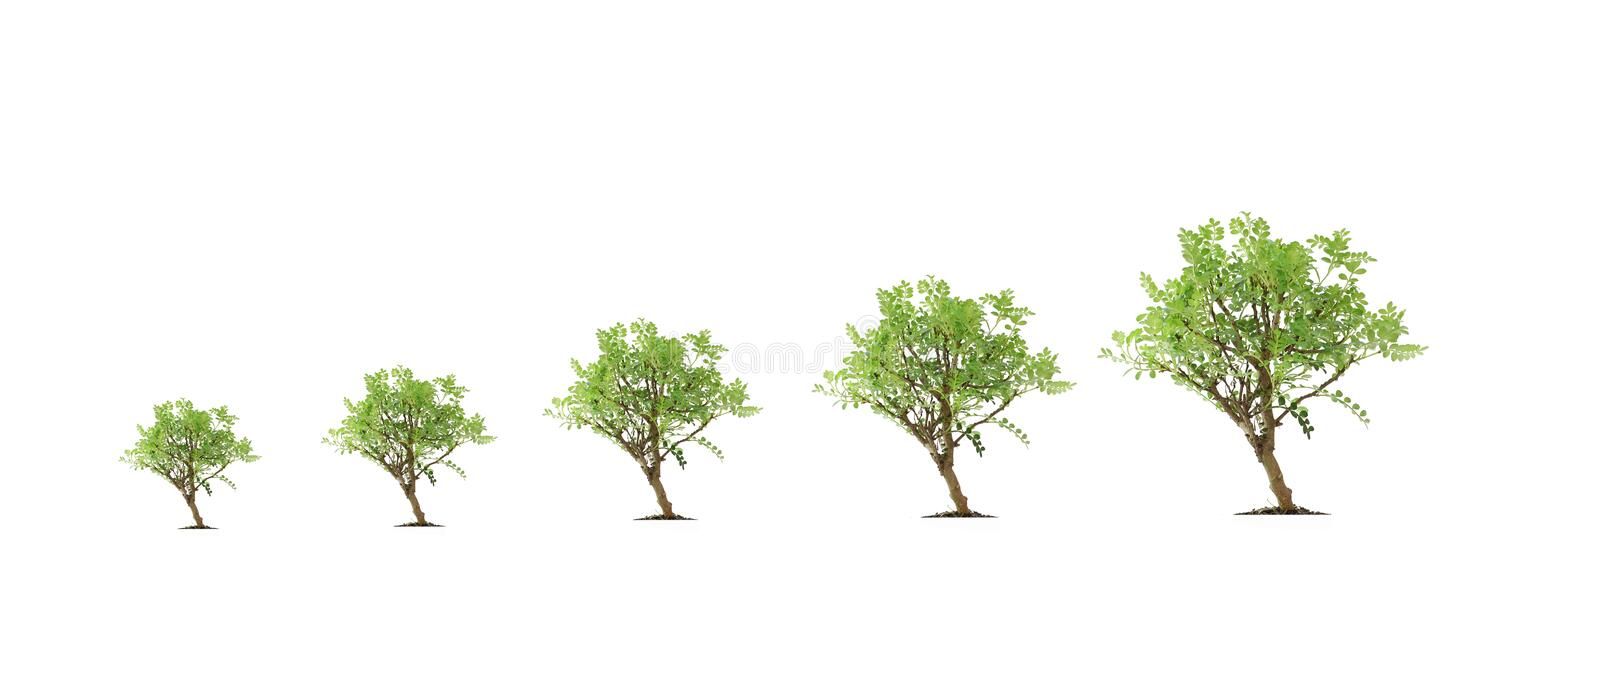 Tree Evolution Royalty Free Stock Photography